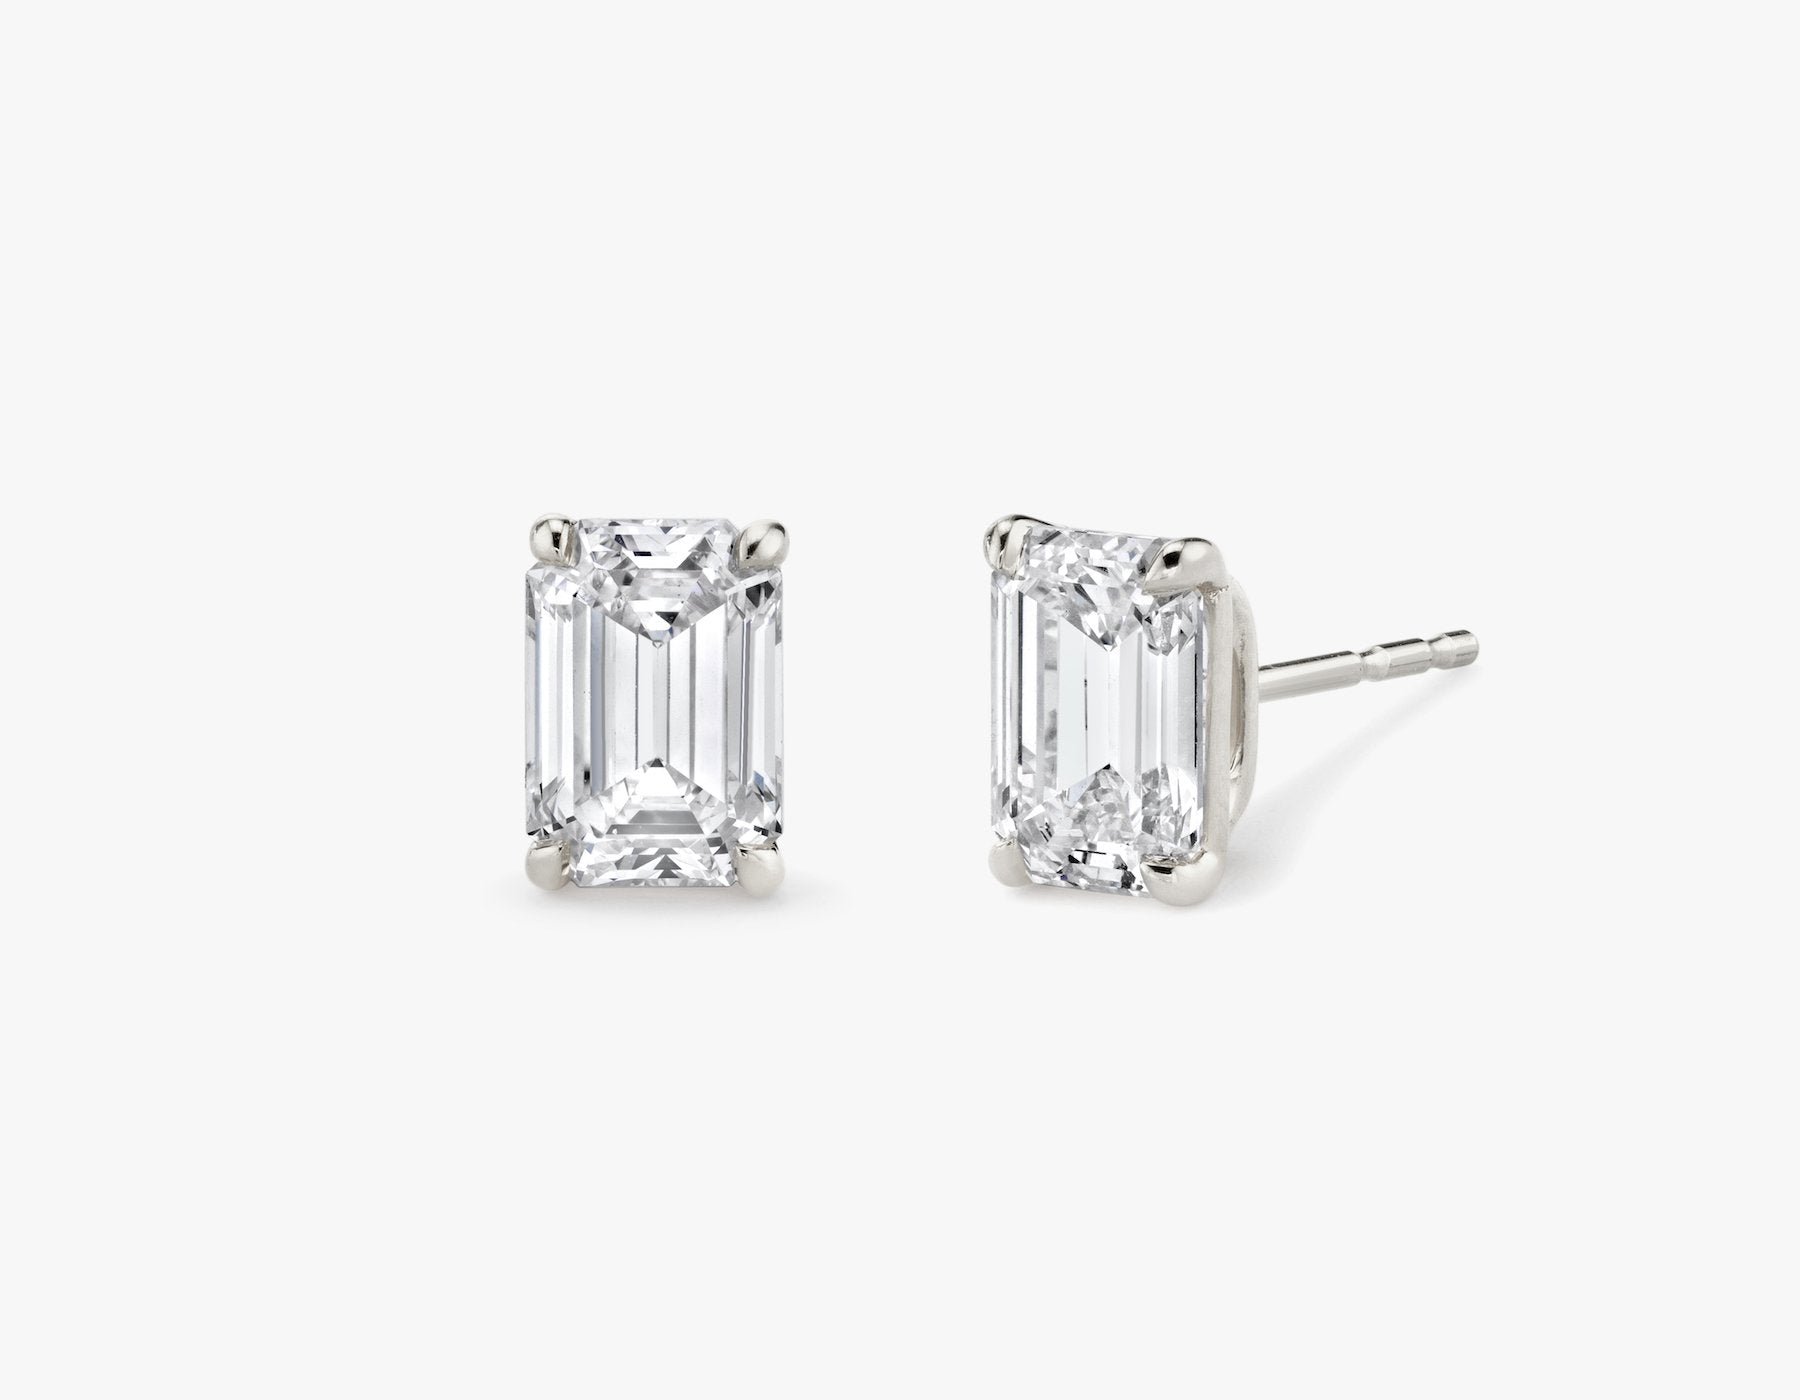 Vrai 14K solid gold solitaire emerald diamond studs earrings 1ct minimalist delicate, 14K White Gold